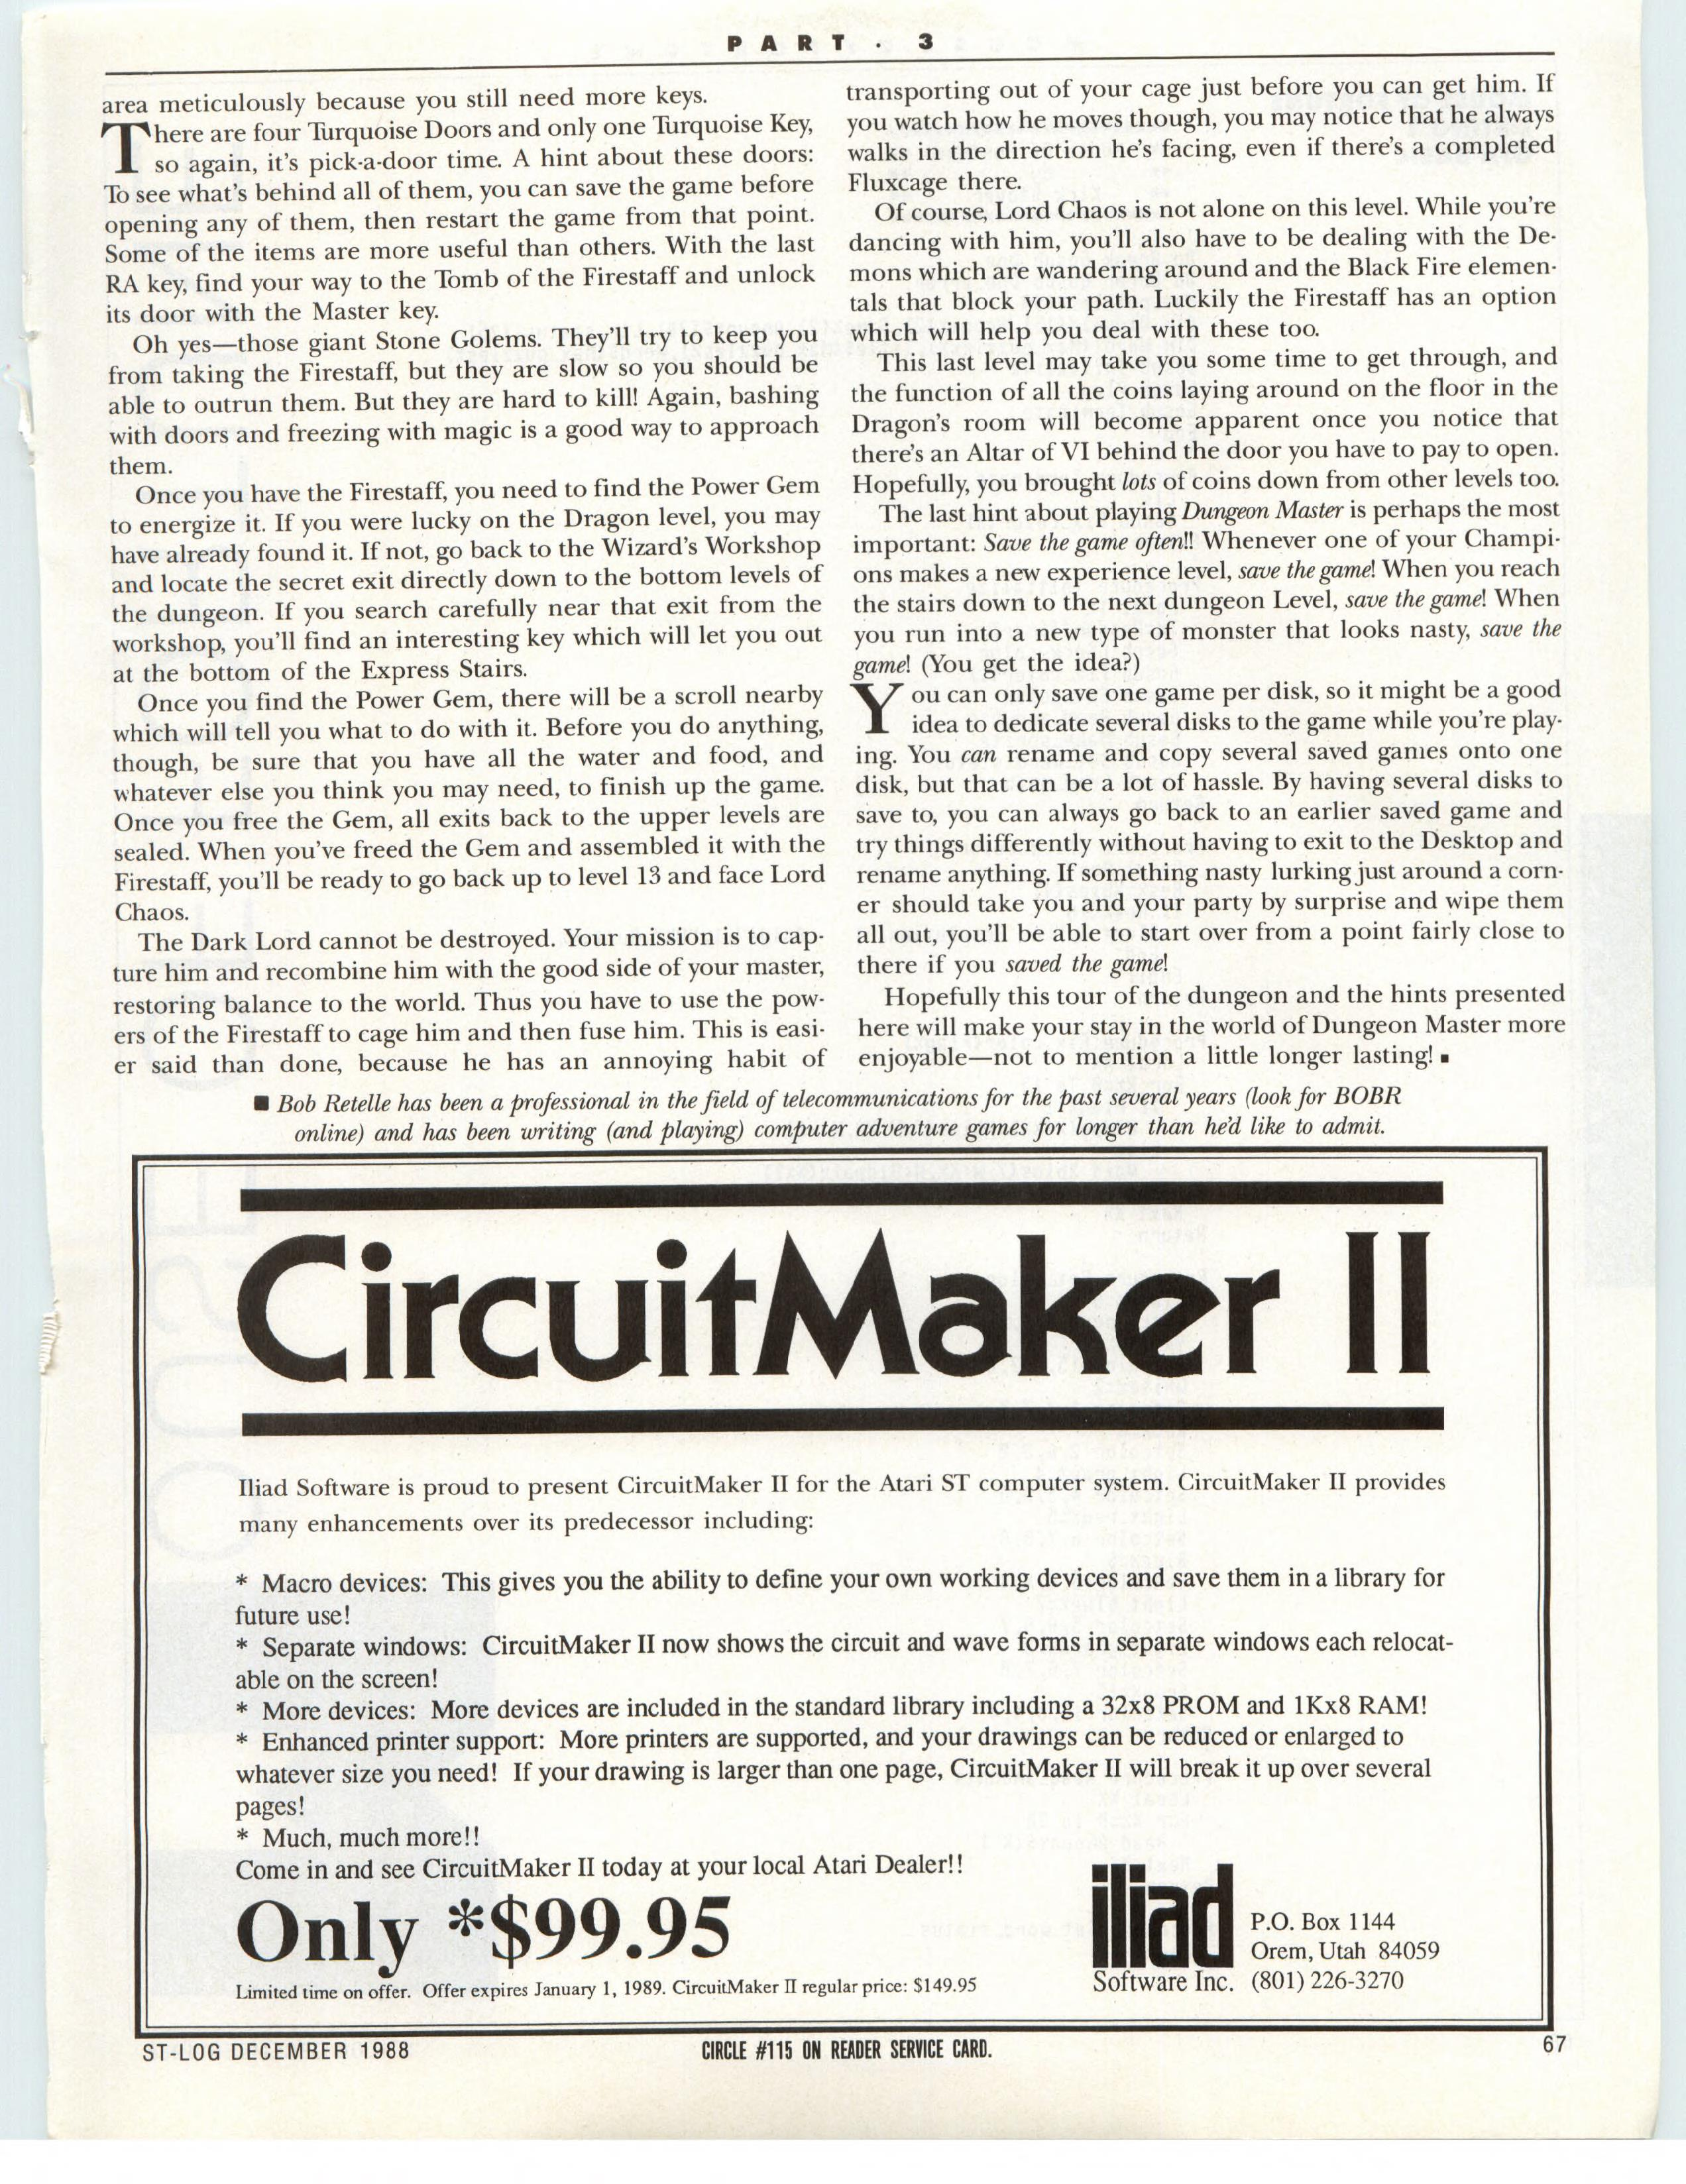 Dungeon Master for Atari ST Guide published in American magazine 'ST-Log', Issue #26 December 1988, Page 67